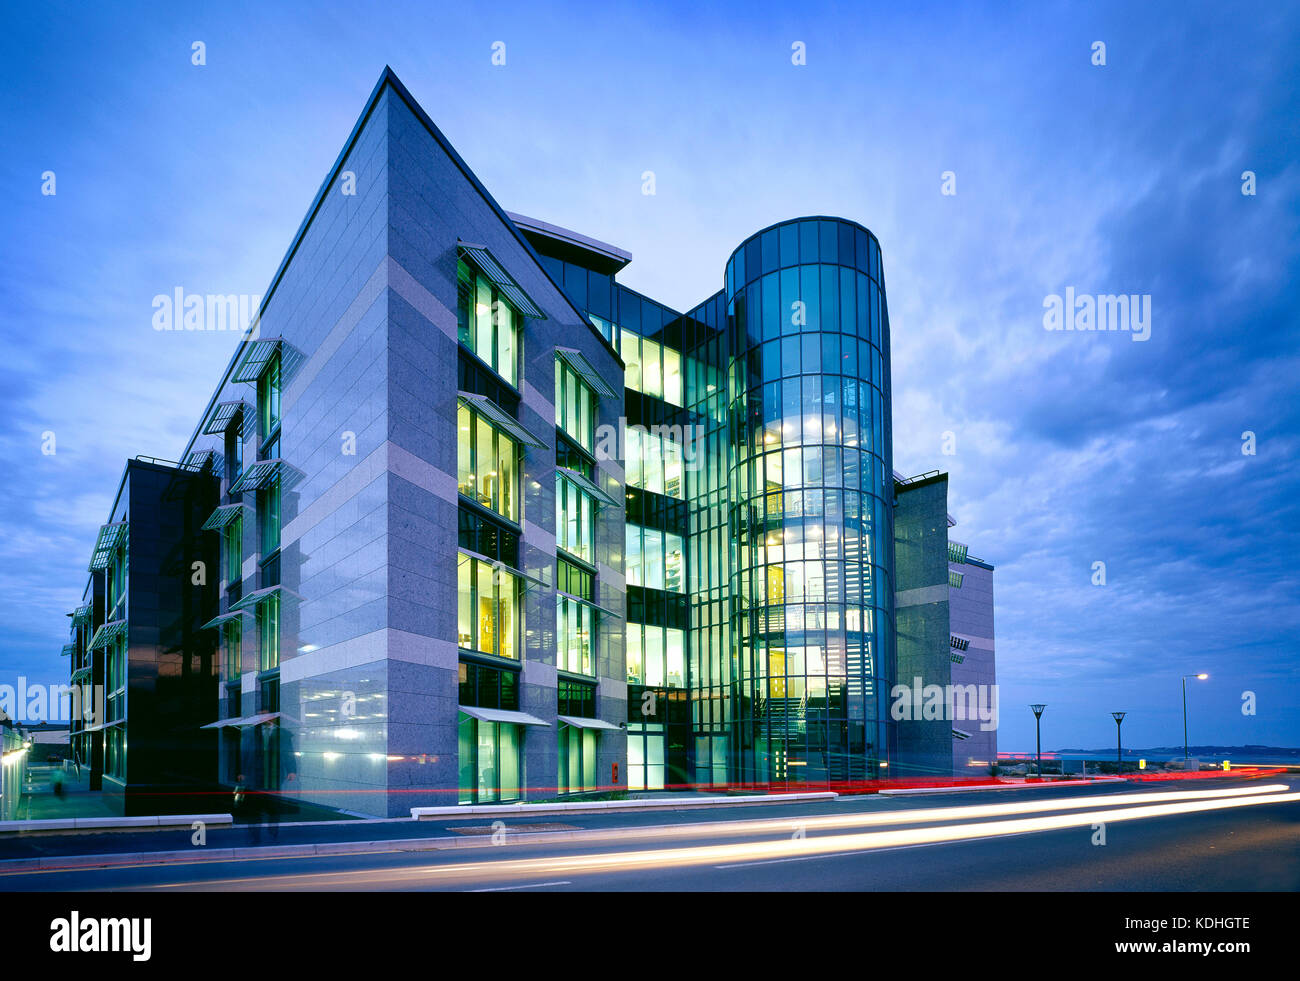 Architecture. Modern commercial building at dusk. Admiral Park Financial District. Saint Peter Port. Guernsey. - Stock Image